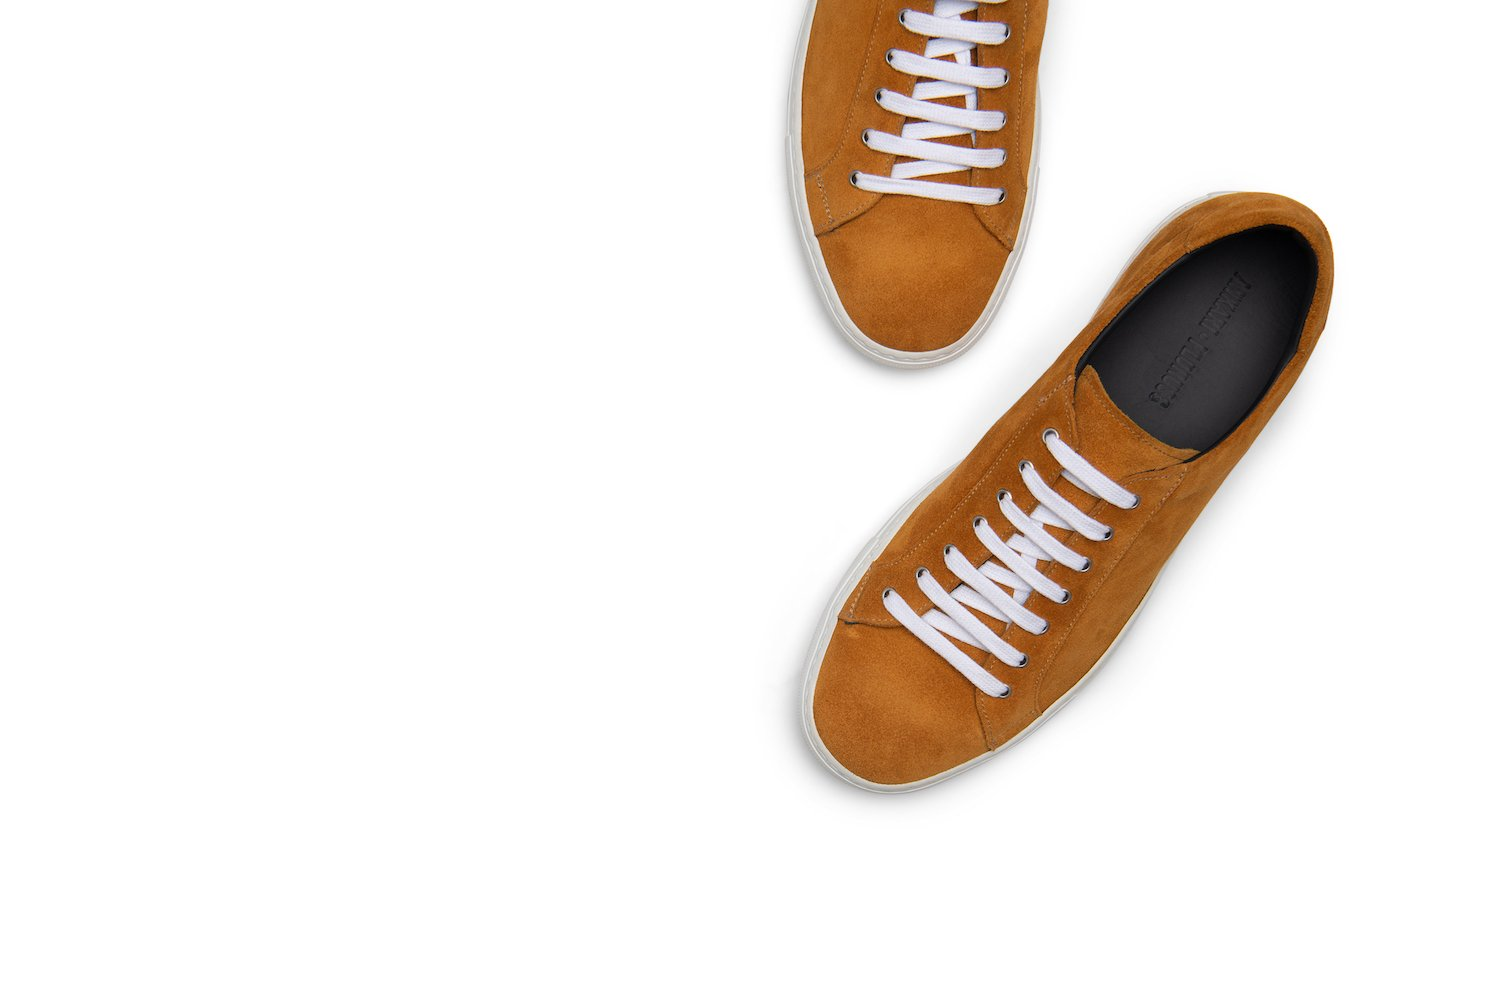 Saturday Lace-Up Sneaker in Marigold (FINAL SALE)